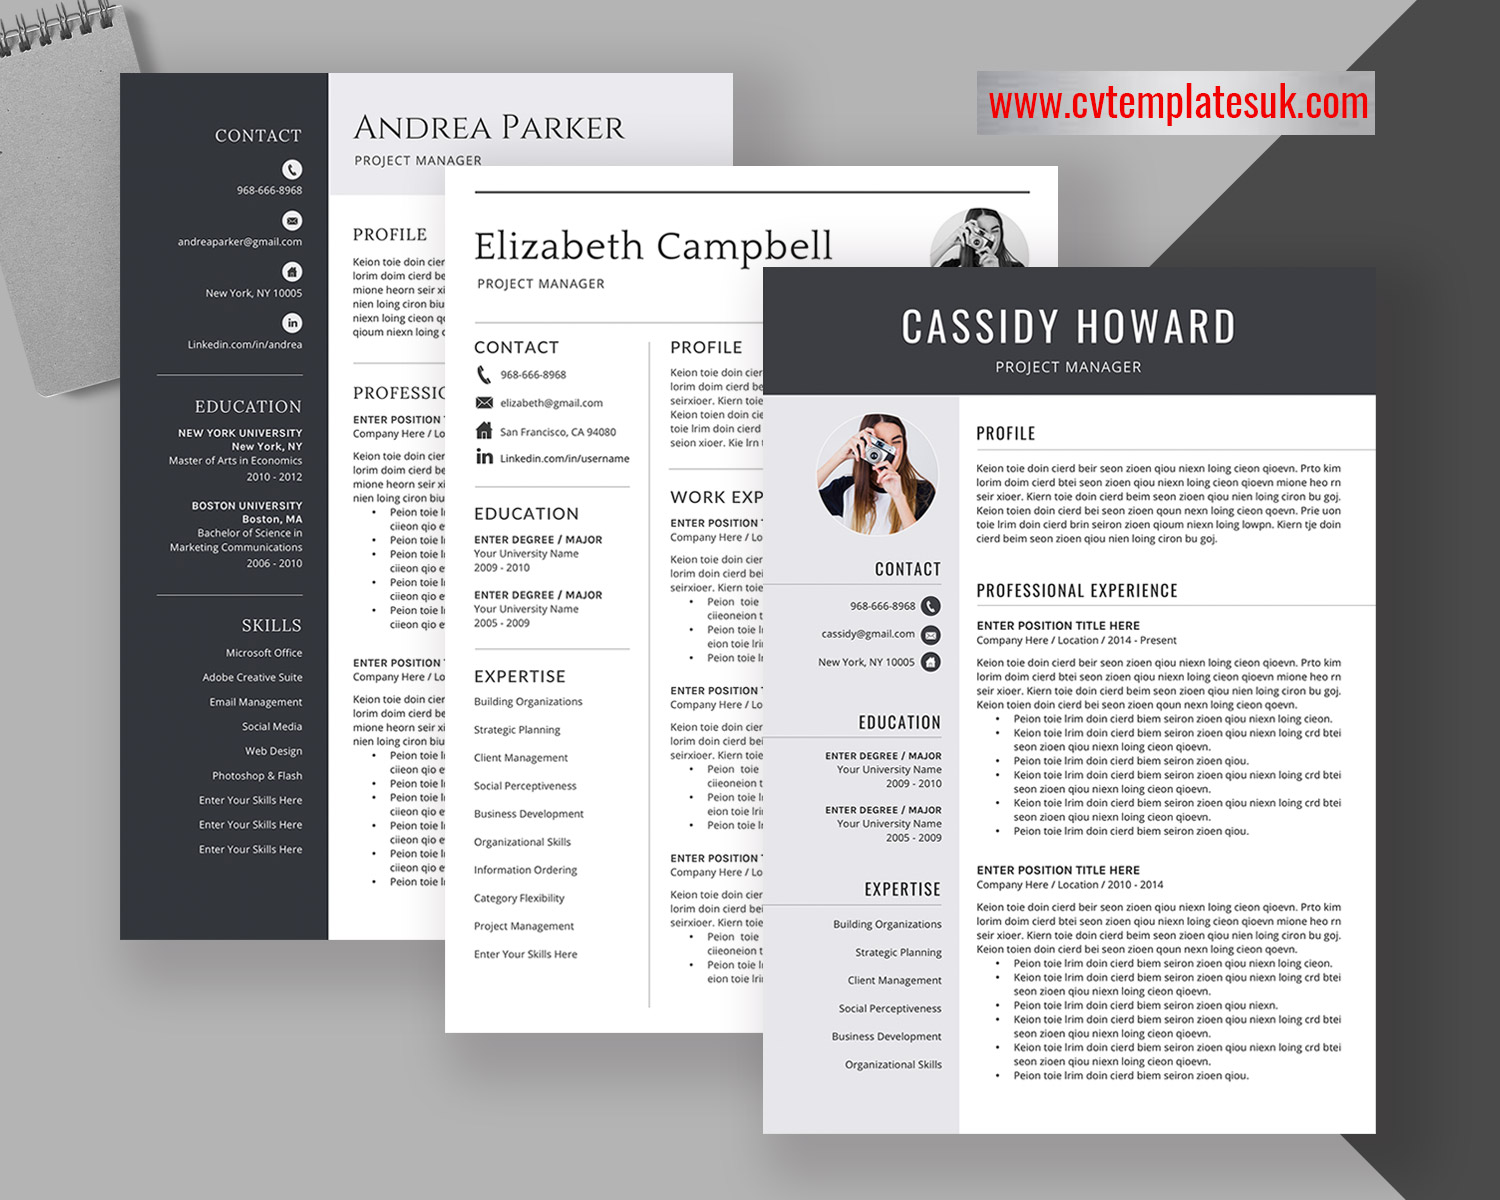 creative resume templates for microsoft word modern cv design with cover letter and Resume Resume References Template Download